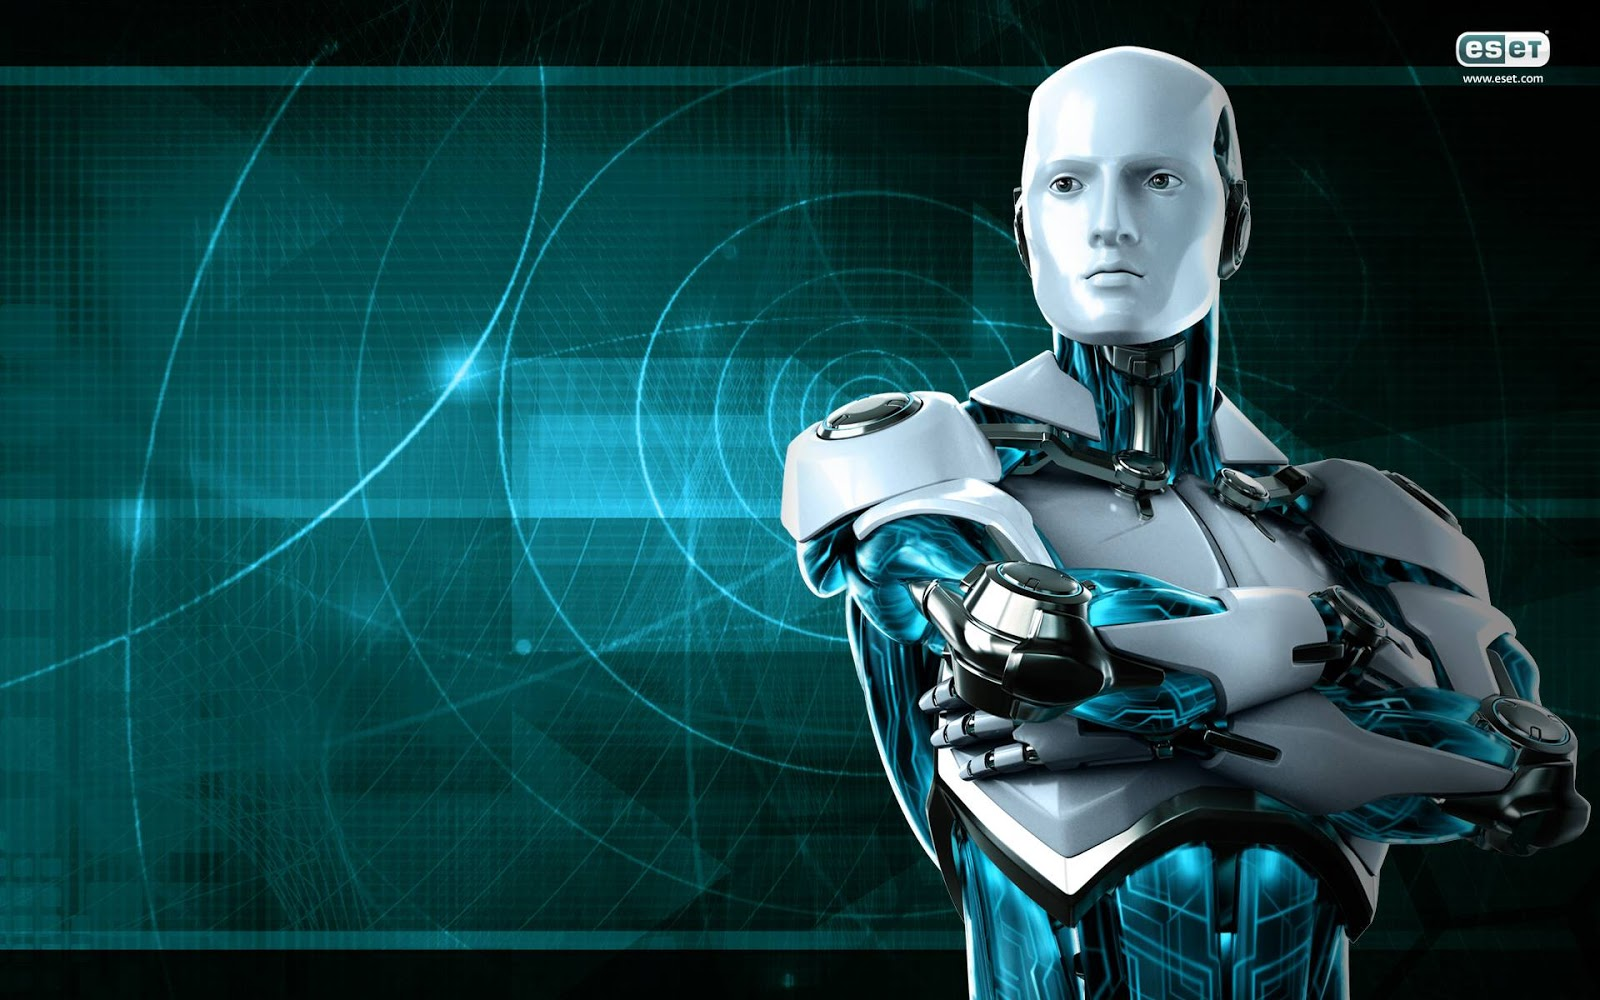 Eset Nod32 Antivirus 2016 01 26 Key Username And Password